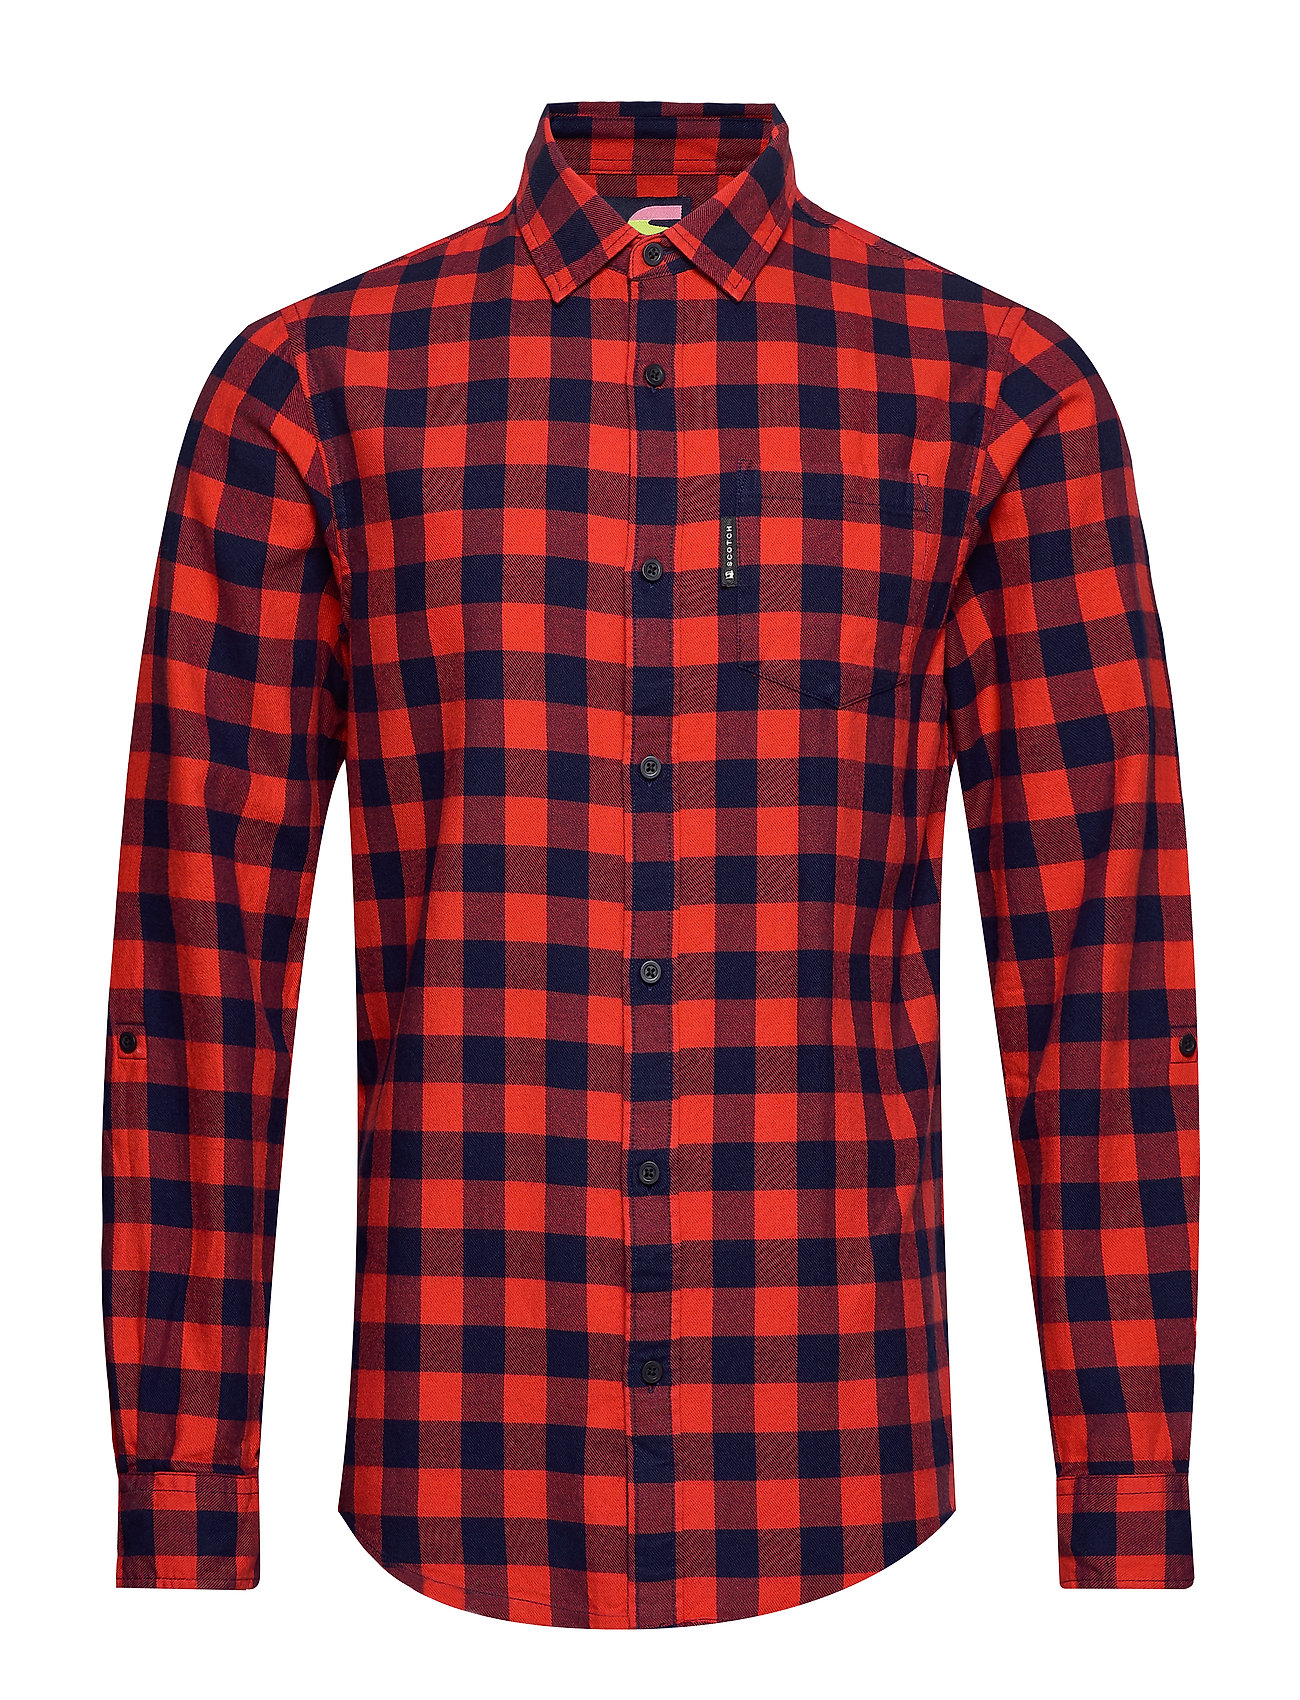 Scotch & Soda REGULAR FIT- Bright check flannel shirt with sleeve roll-up - COMBO A